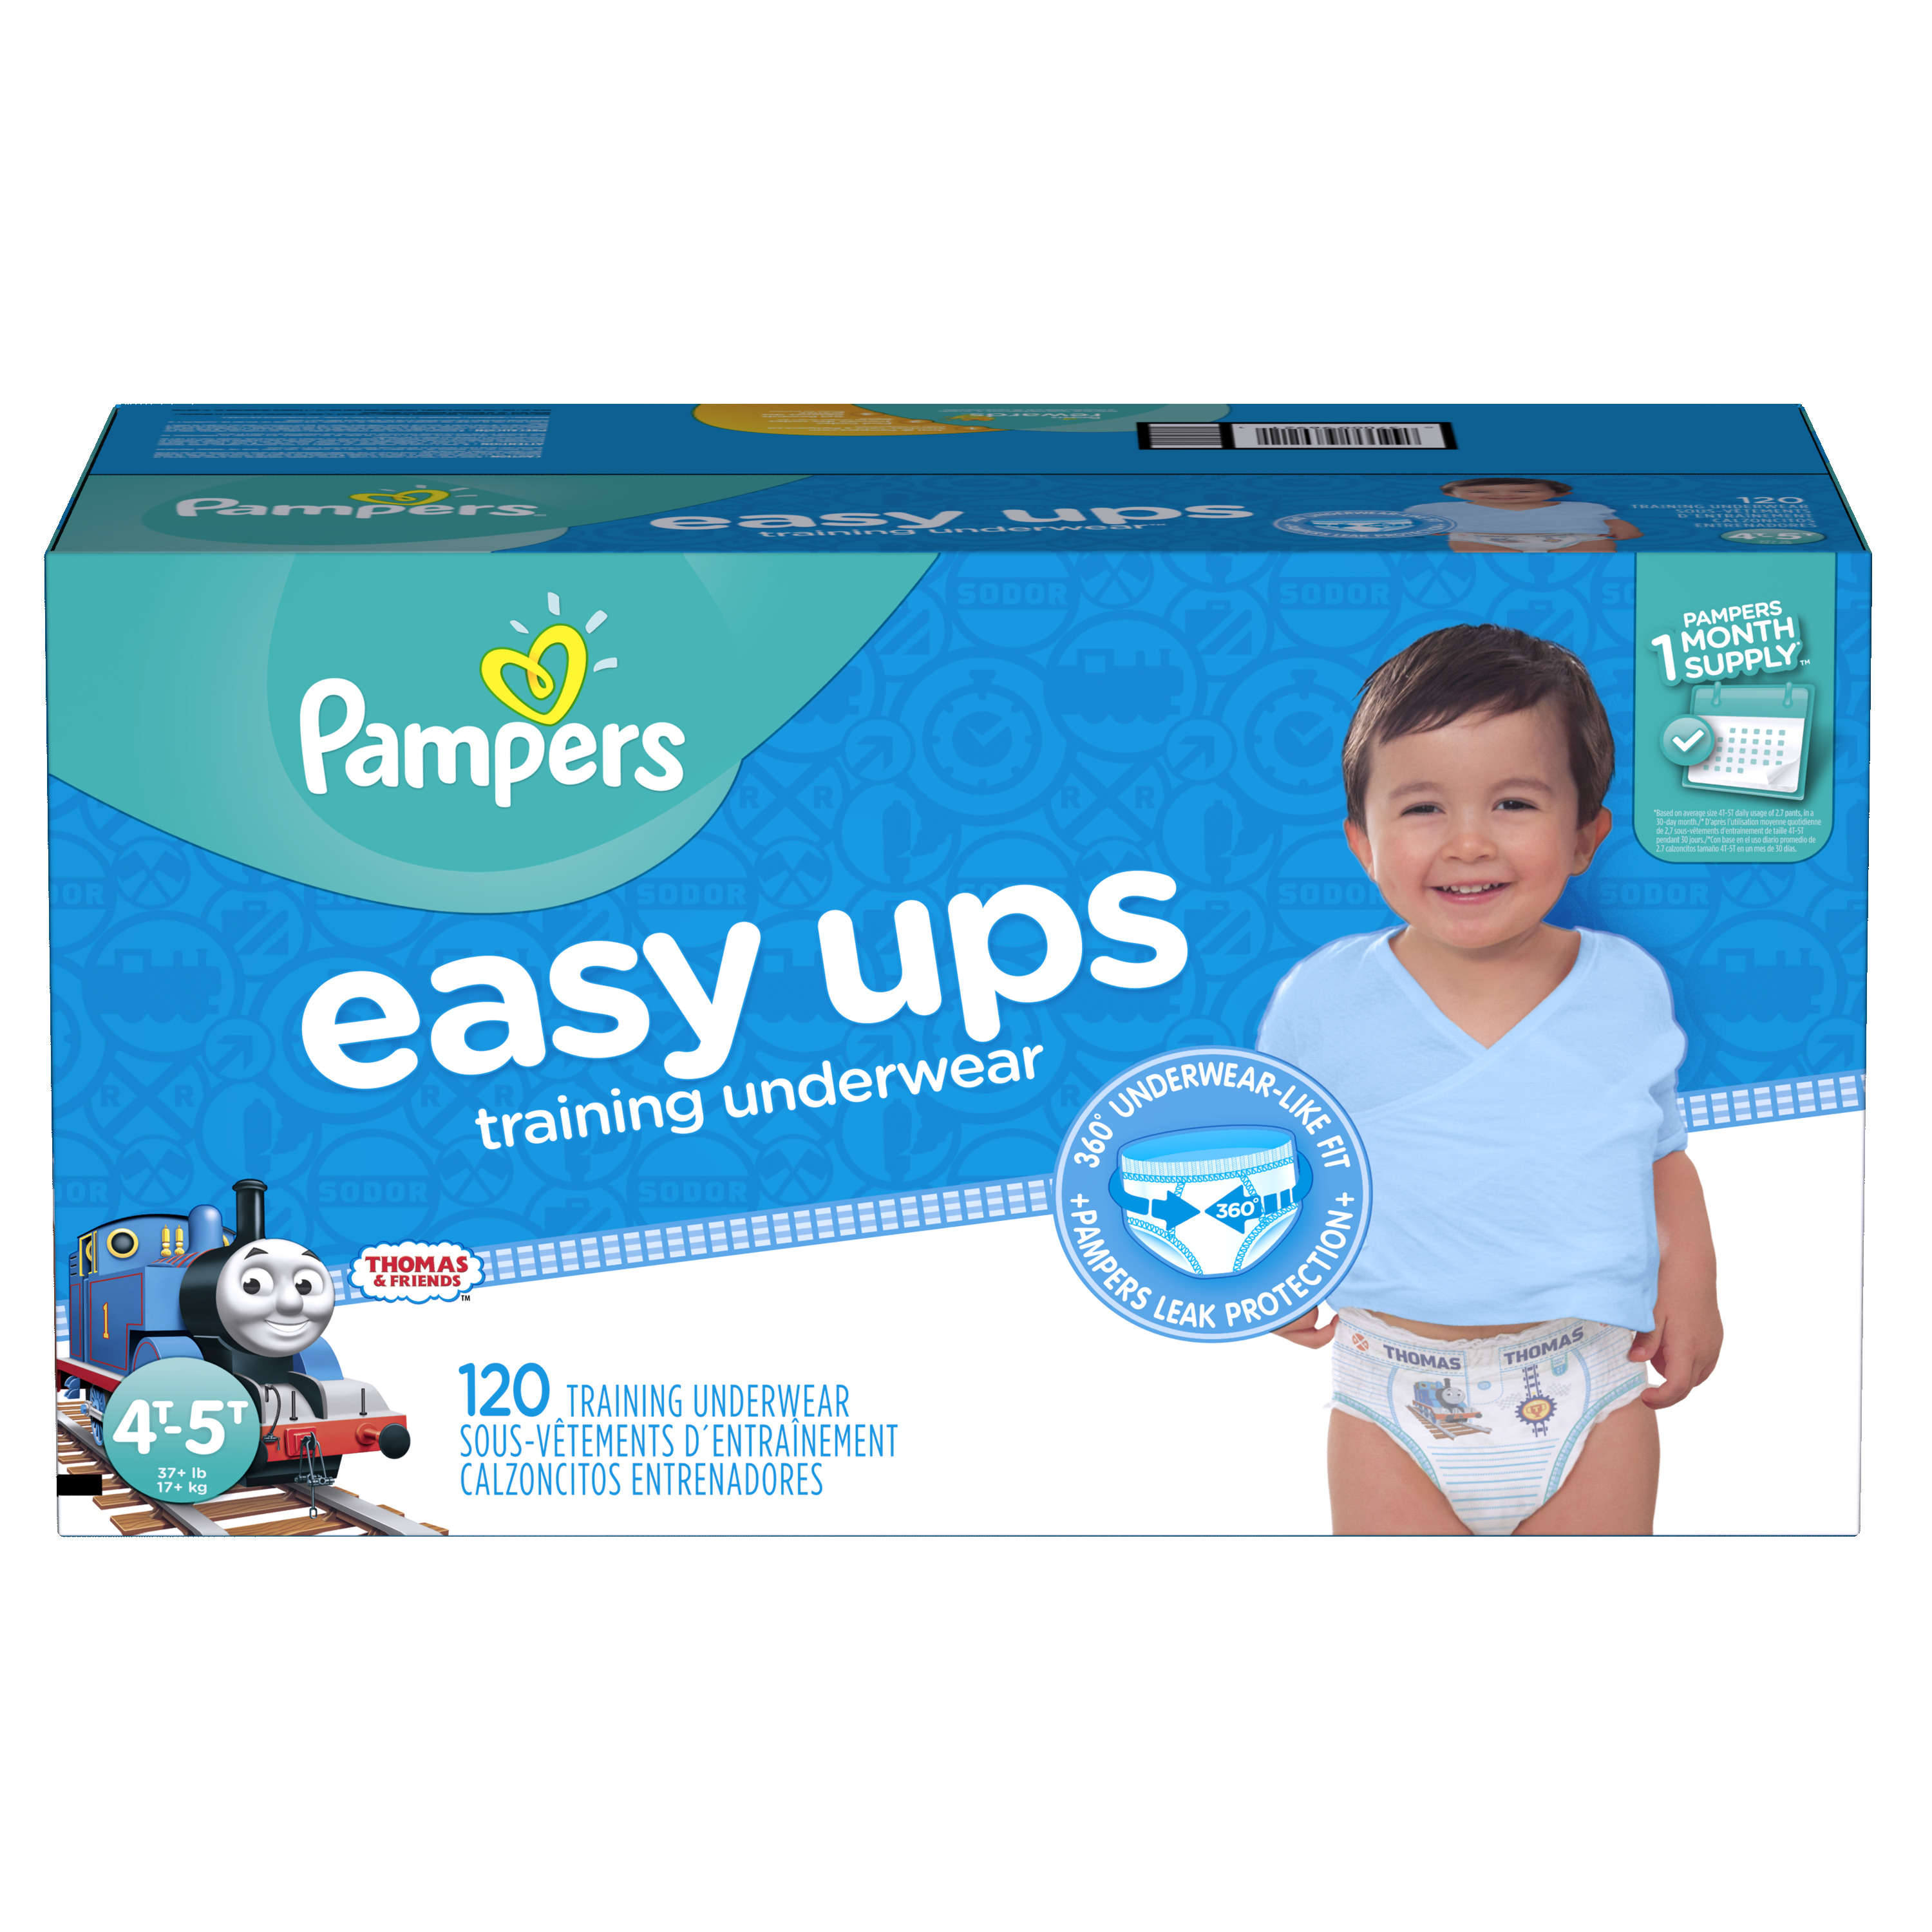 Pampers Easy Ups Boys Training Pants, Size 4T-5T, 120 Pants